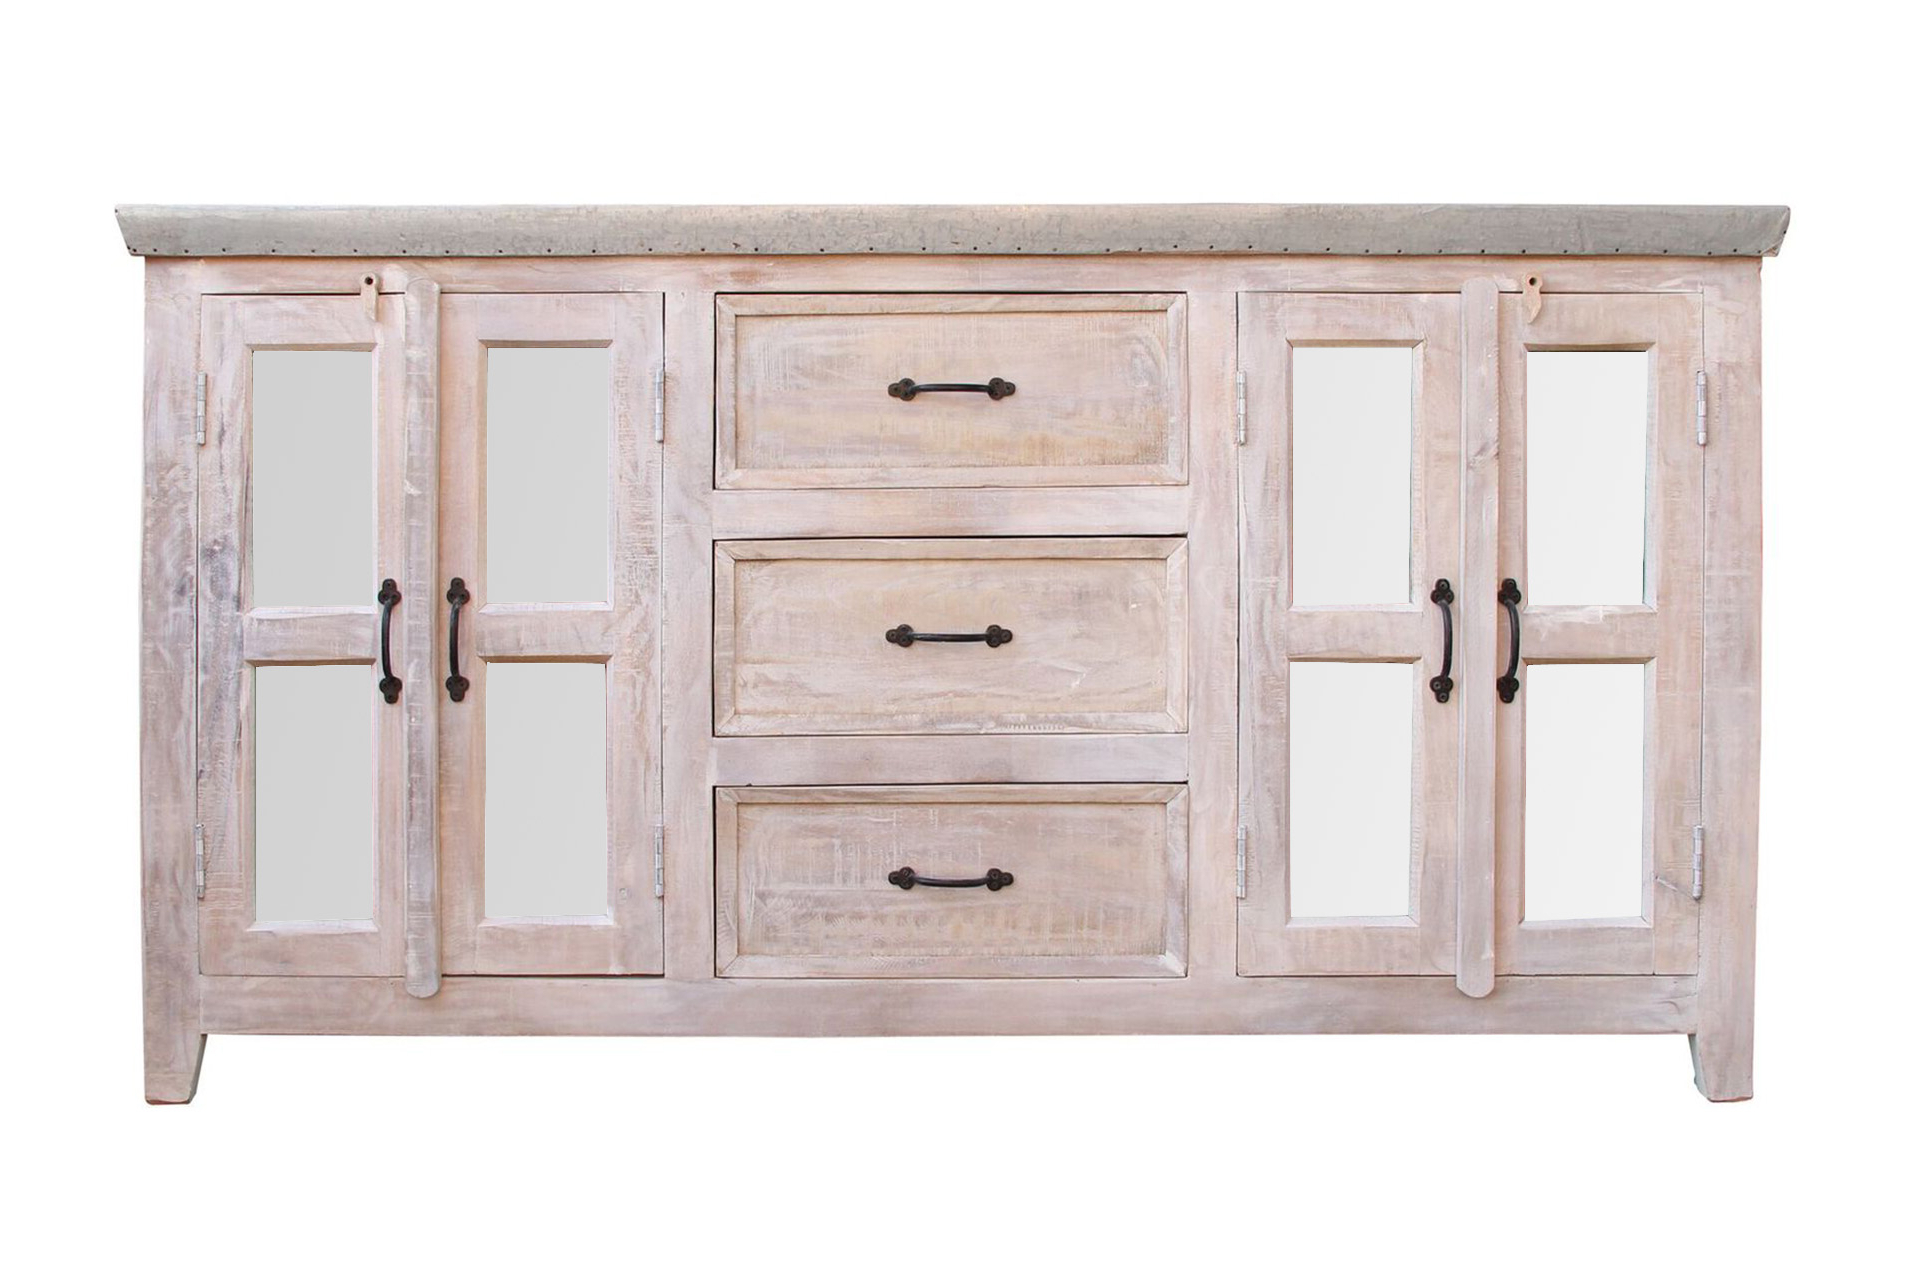 Widely Used White Wash 4 Door/3 Drawer Glass Sideboard Throughout White Wash 4 Door Sideboards (Gallery 2 of 20)